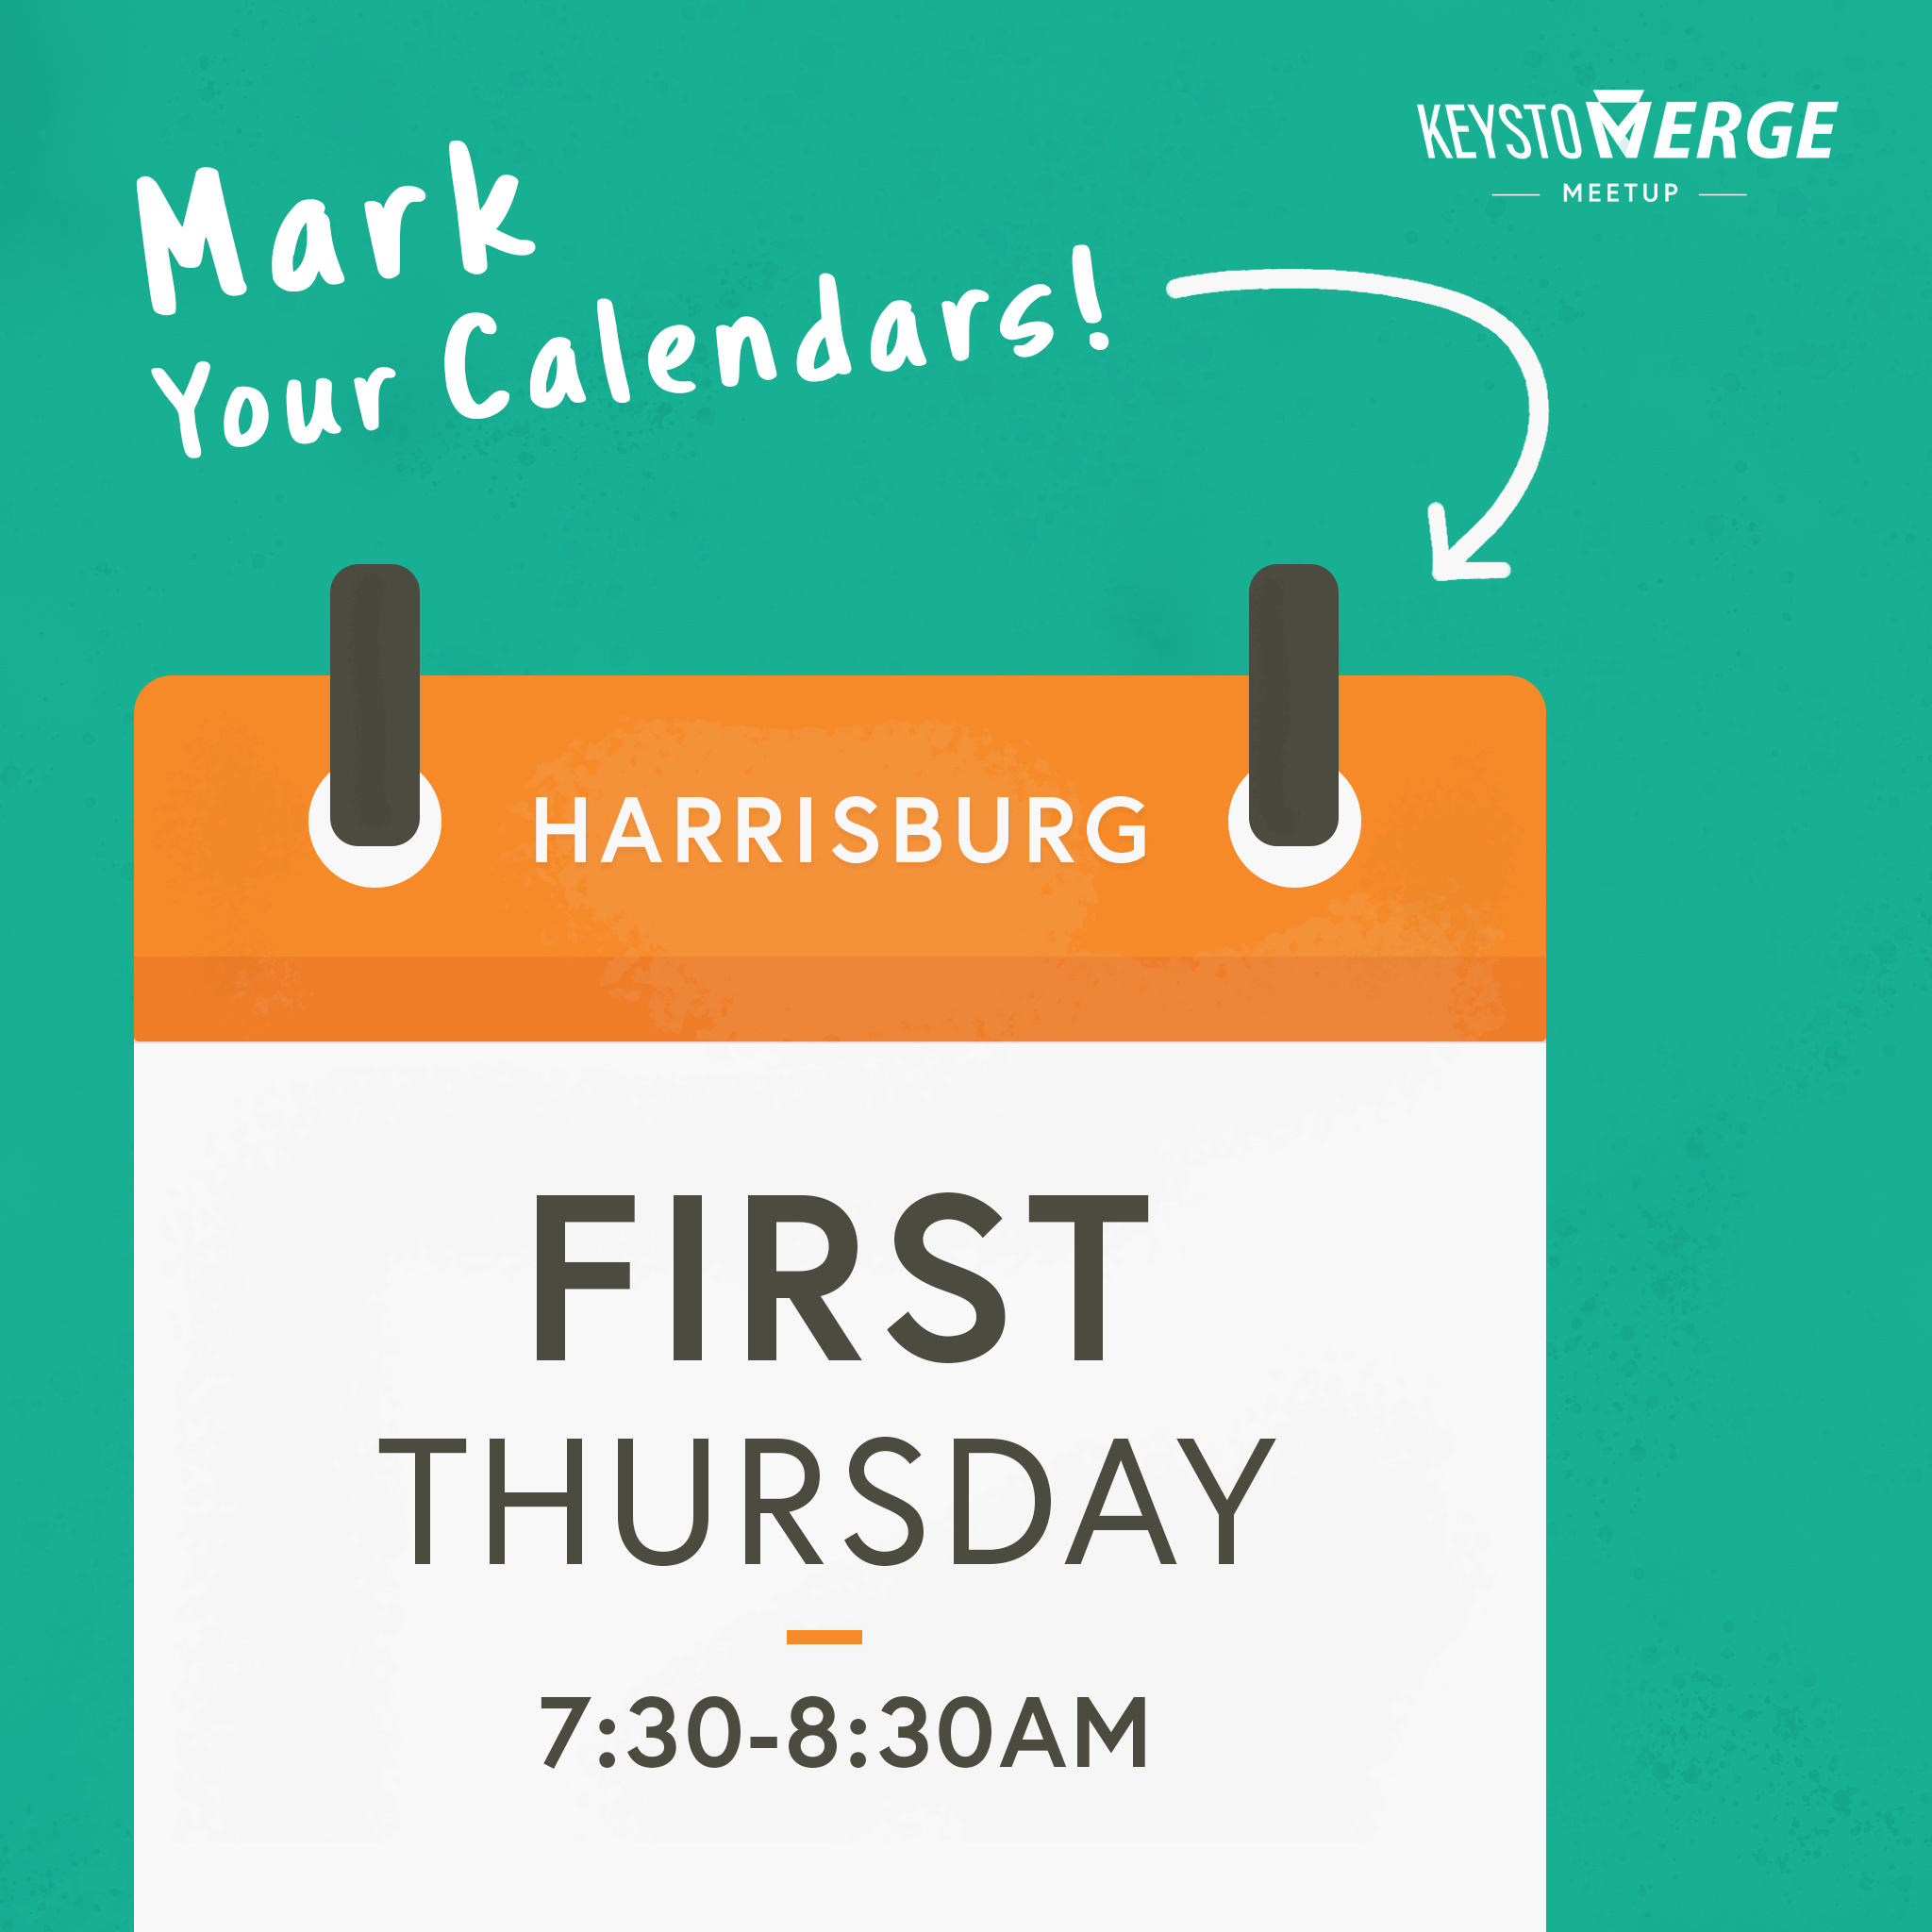 Graphic of Calendar. First Thursday Meetup from 7:00-8:30 in Harrisburg!